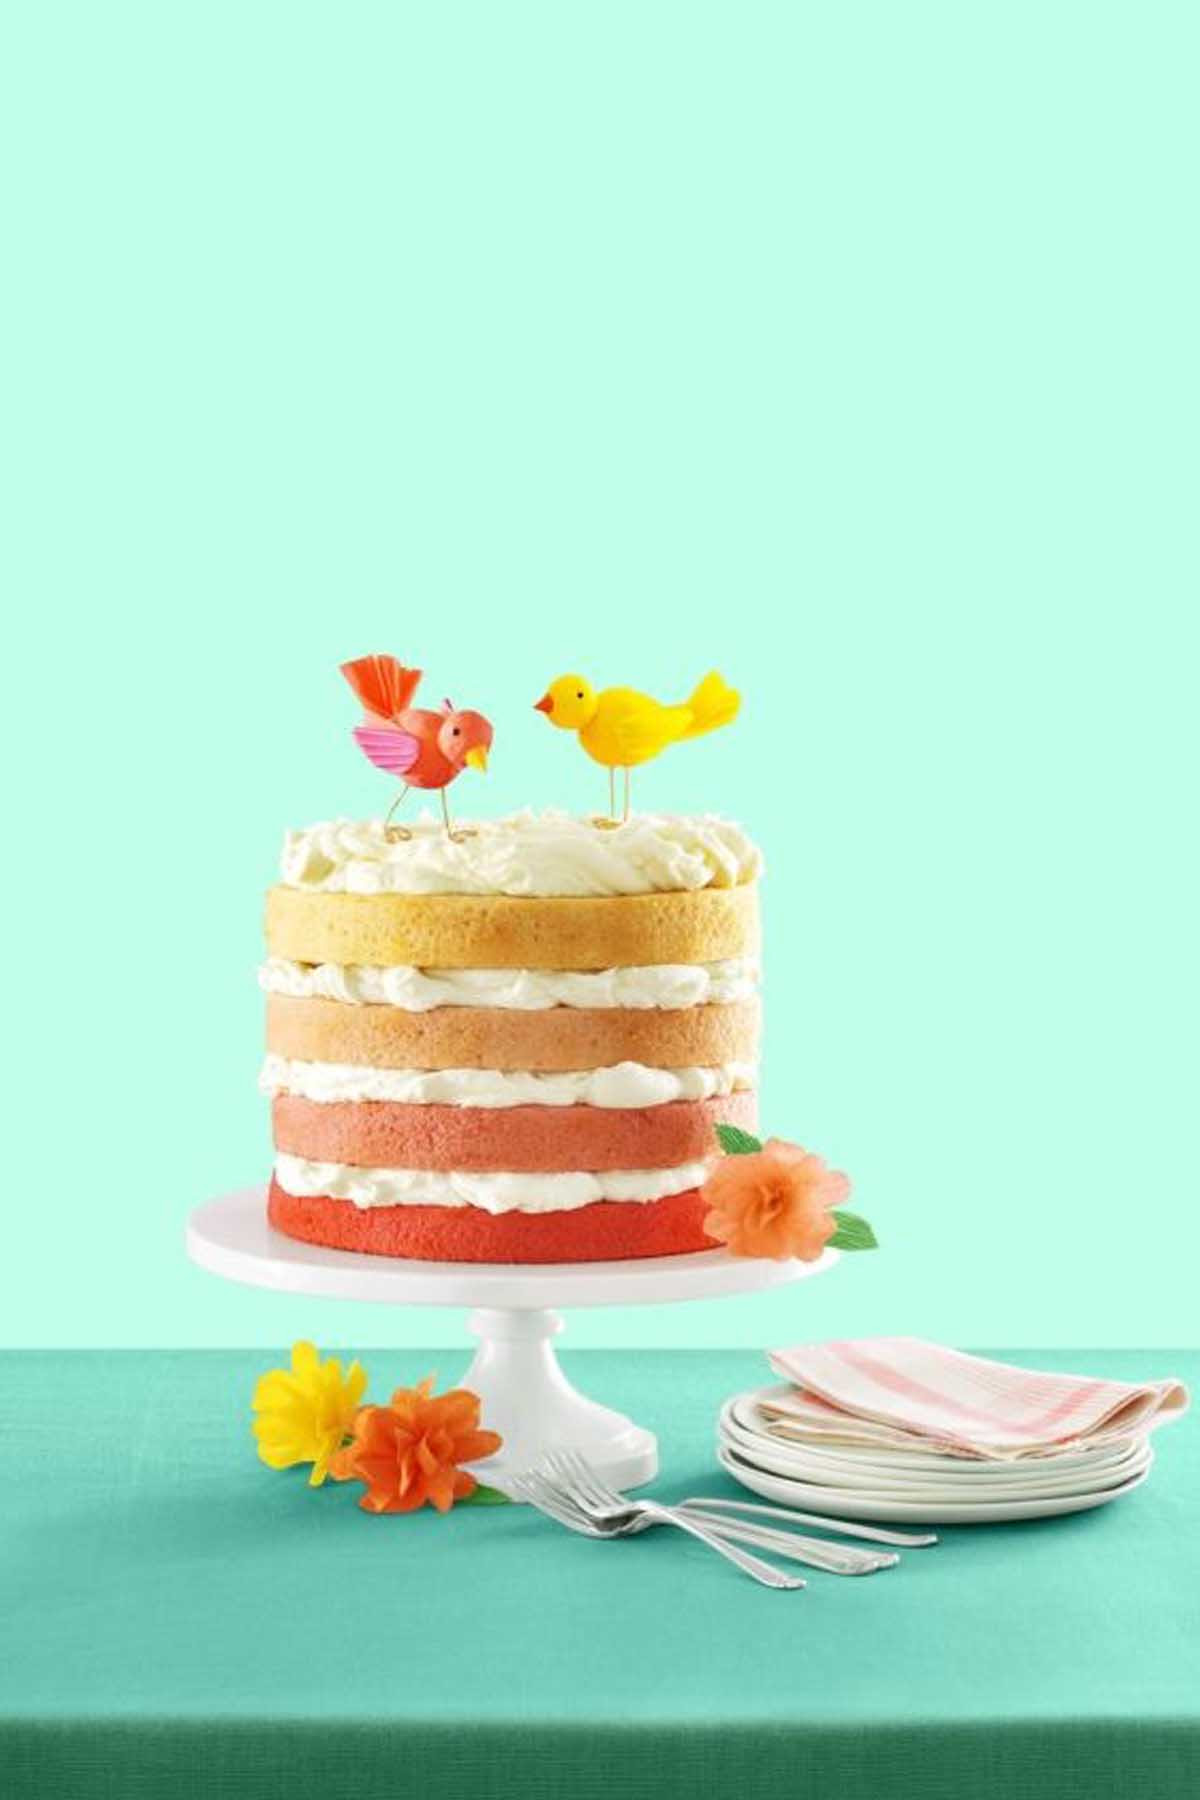 11 Best Mother's Day Cake Recipes - Easy Homemade Cake Ideas for Mom